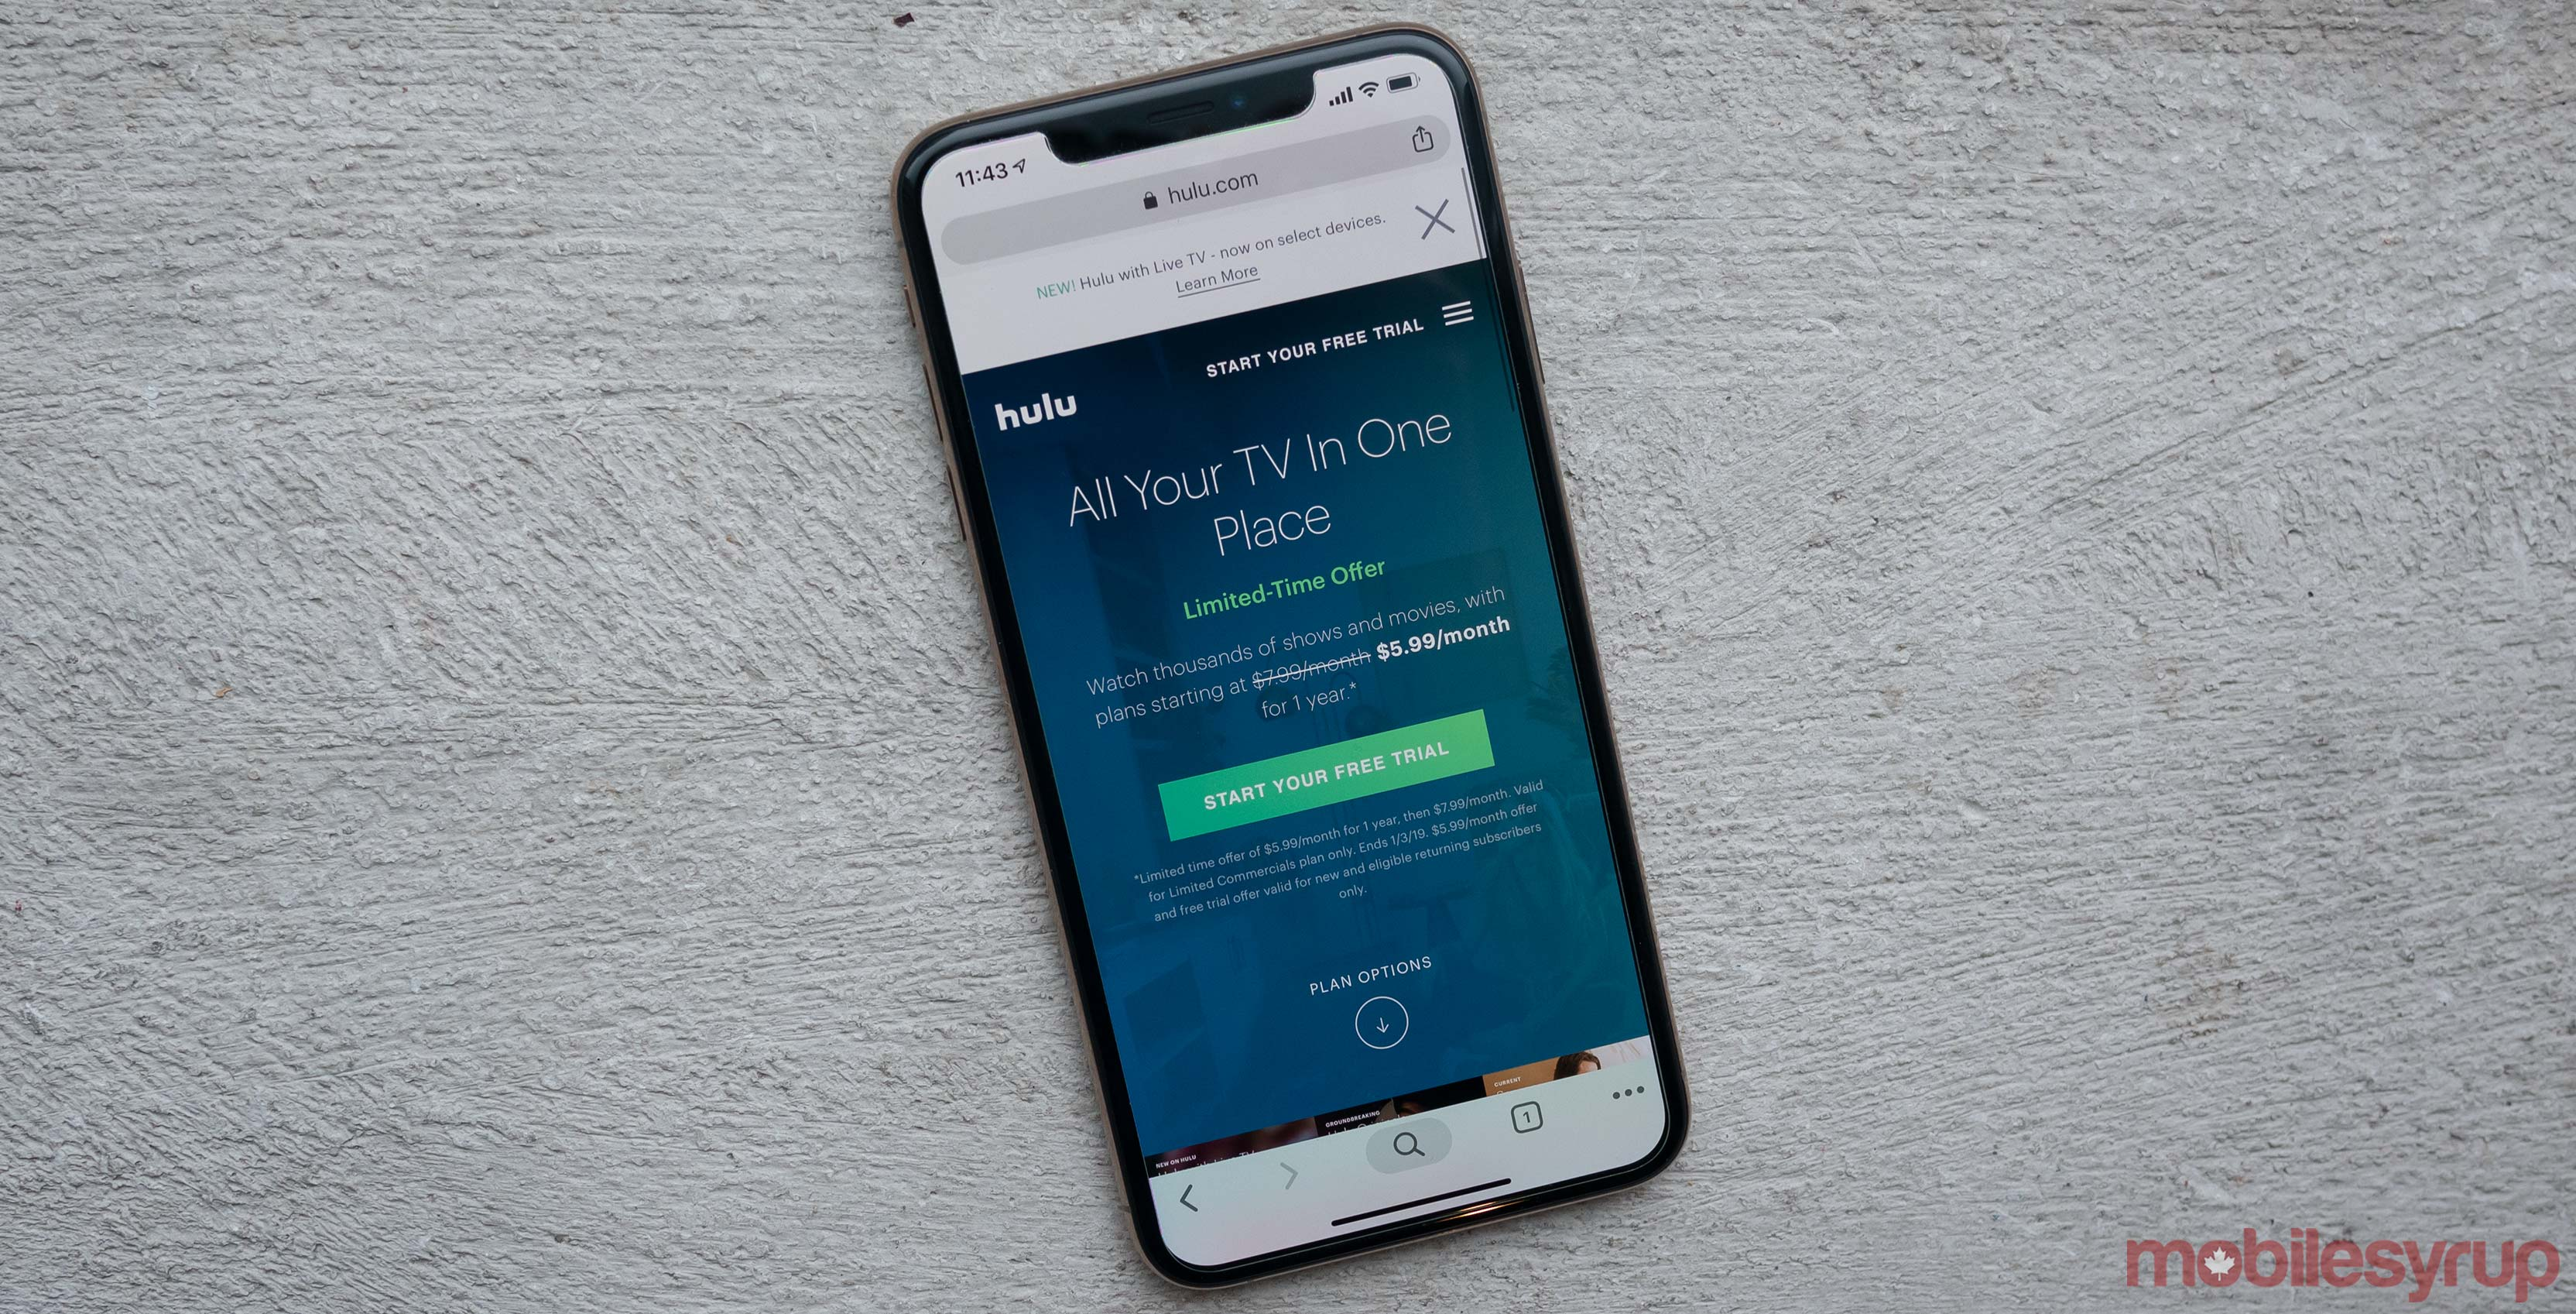 Hulu on the iPhone XS